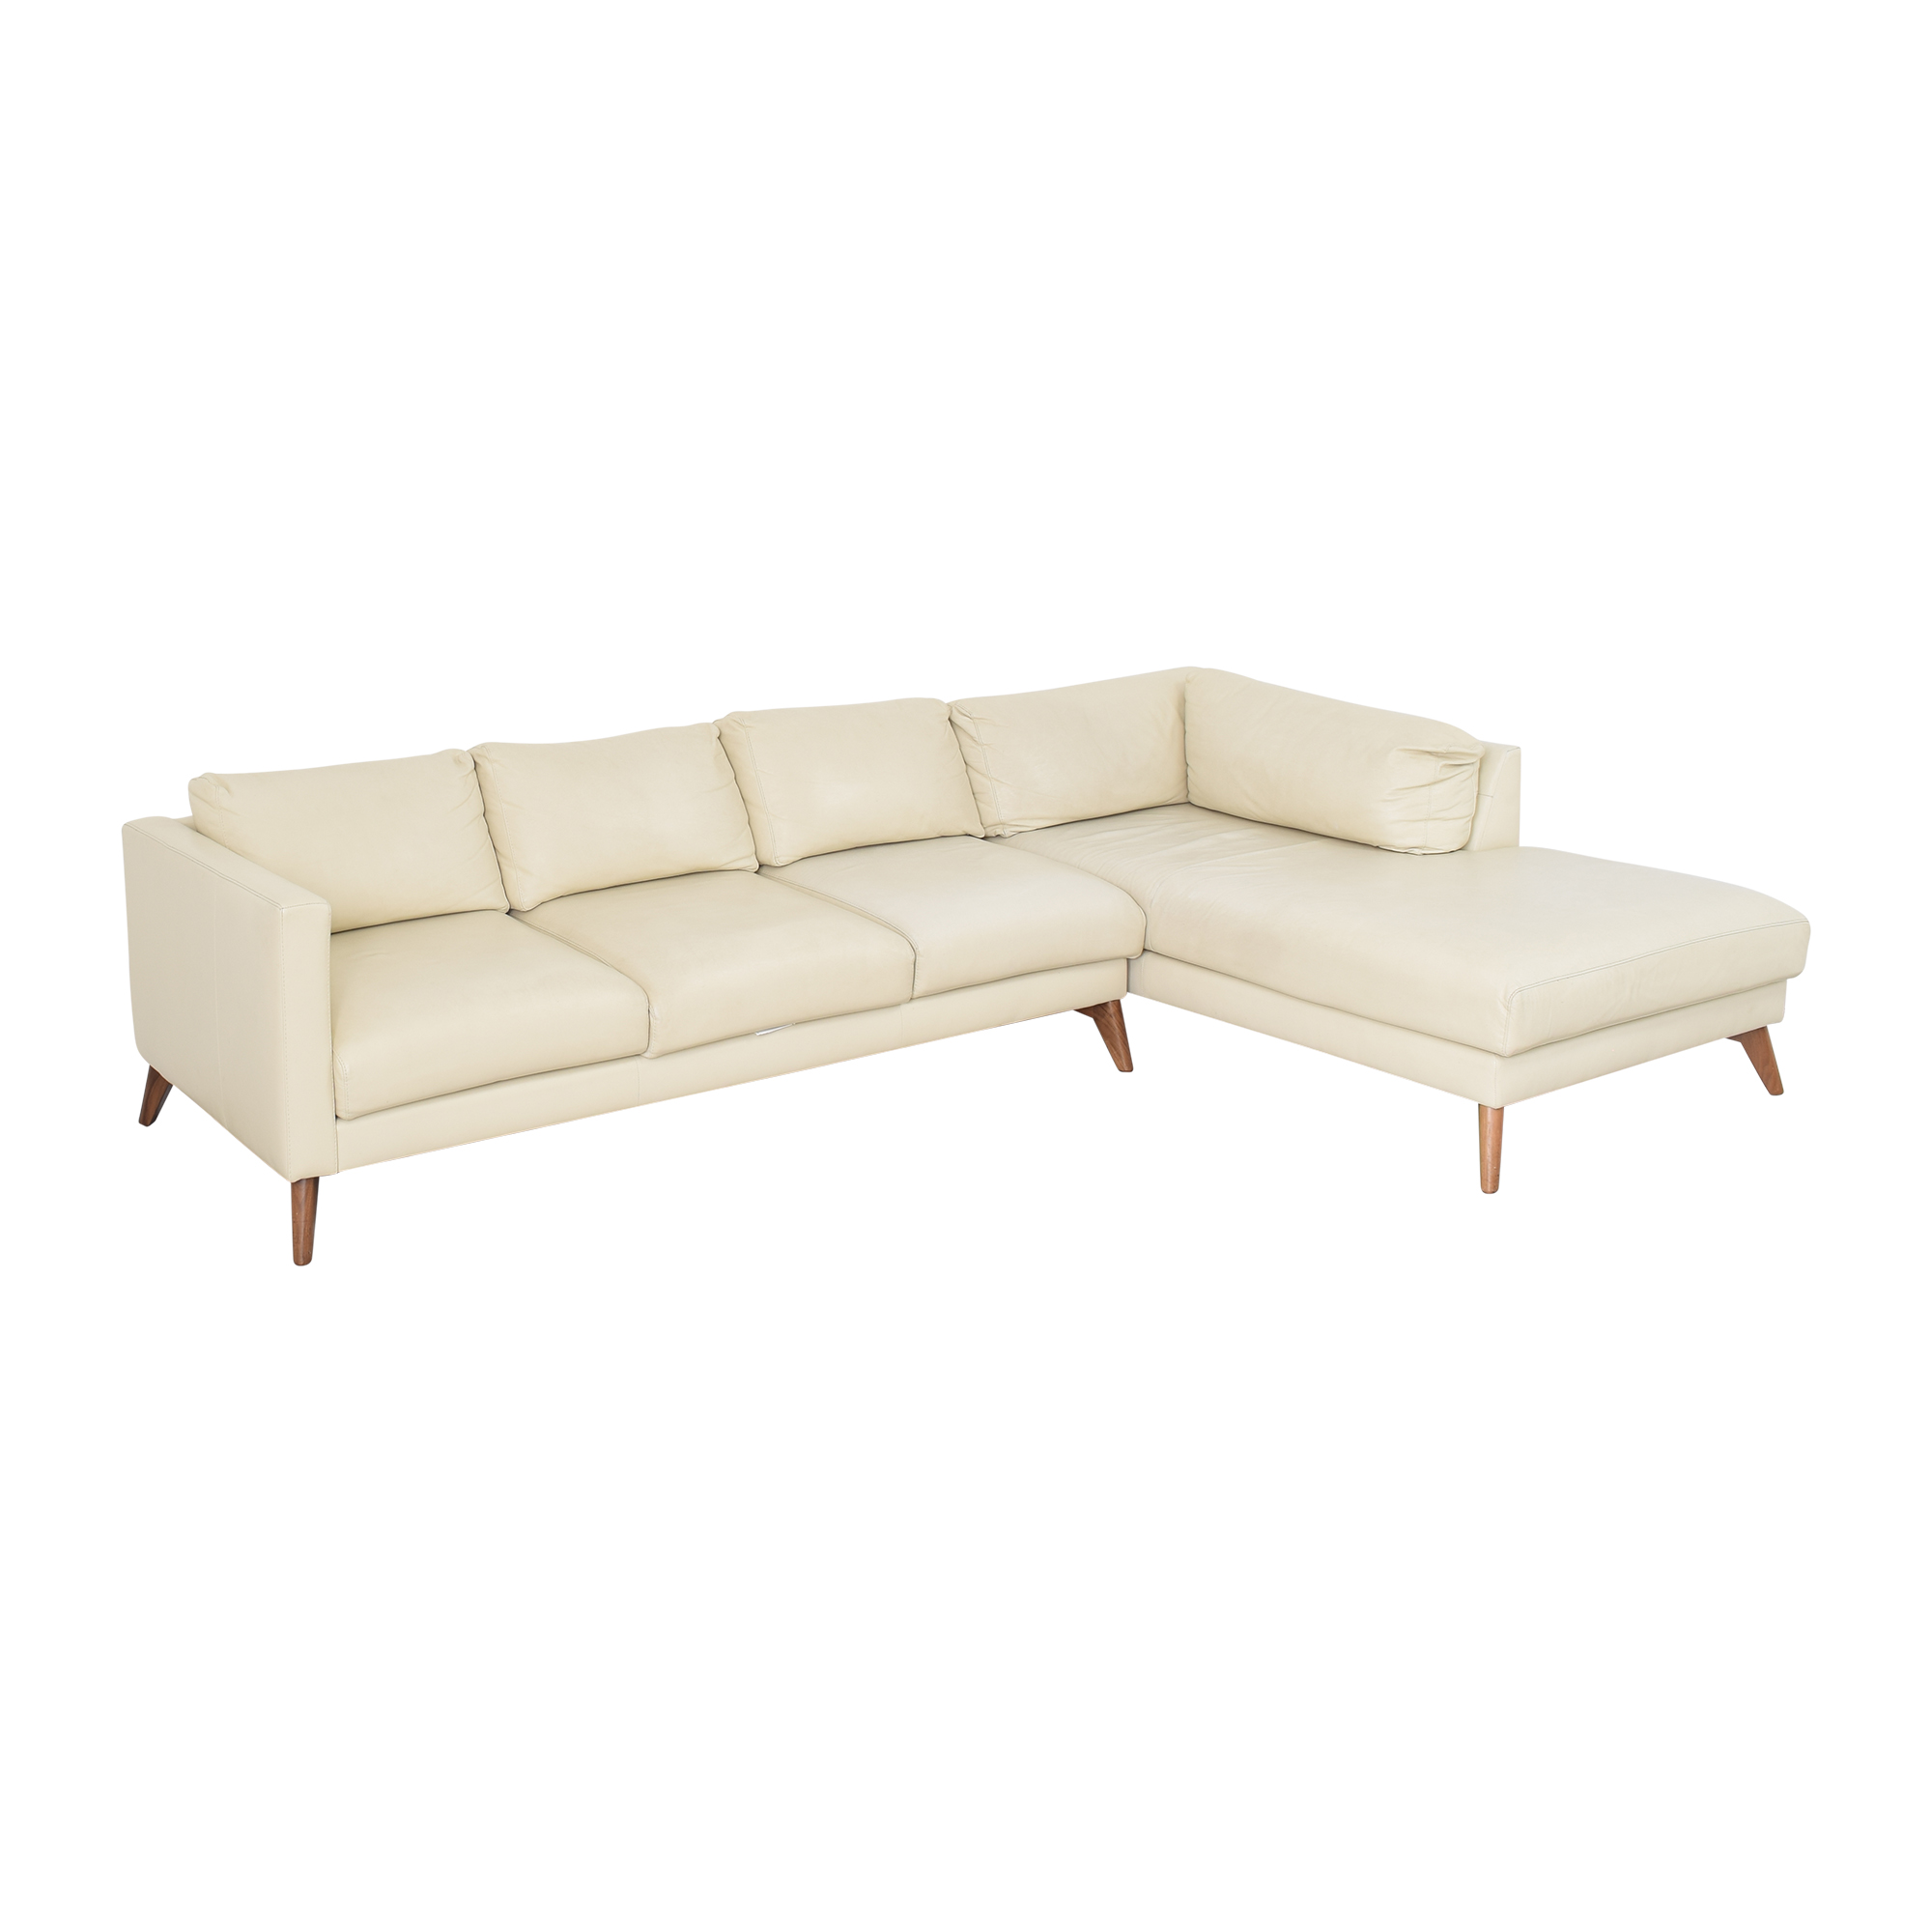 Elite Leather Company Elite Leather Company Burbank Chaise Sectional Sofa Sofas